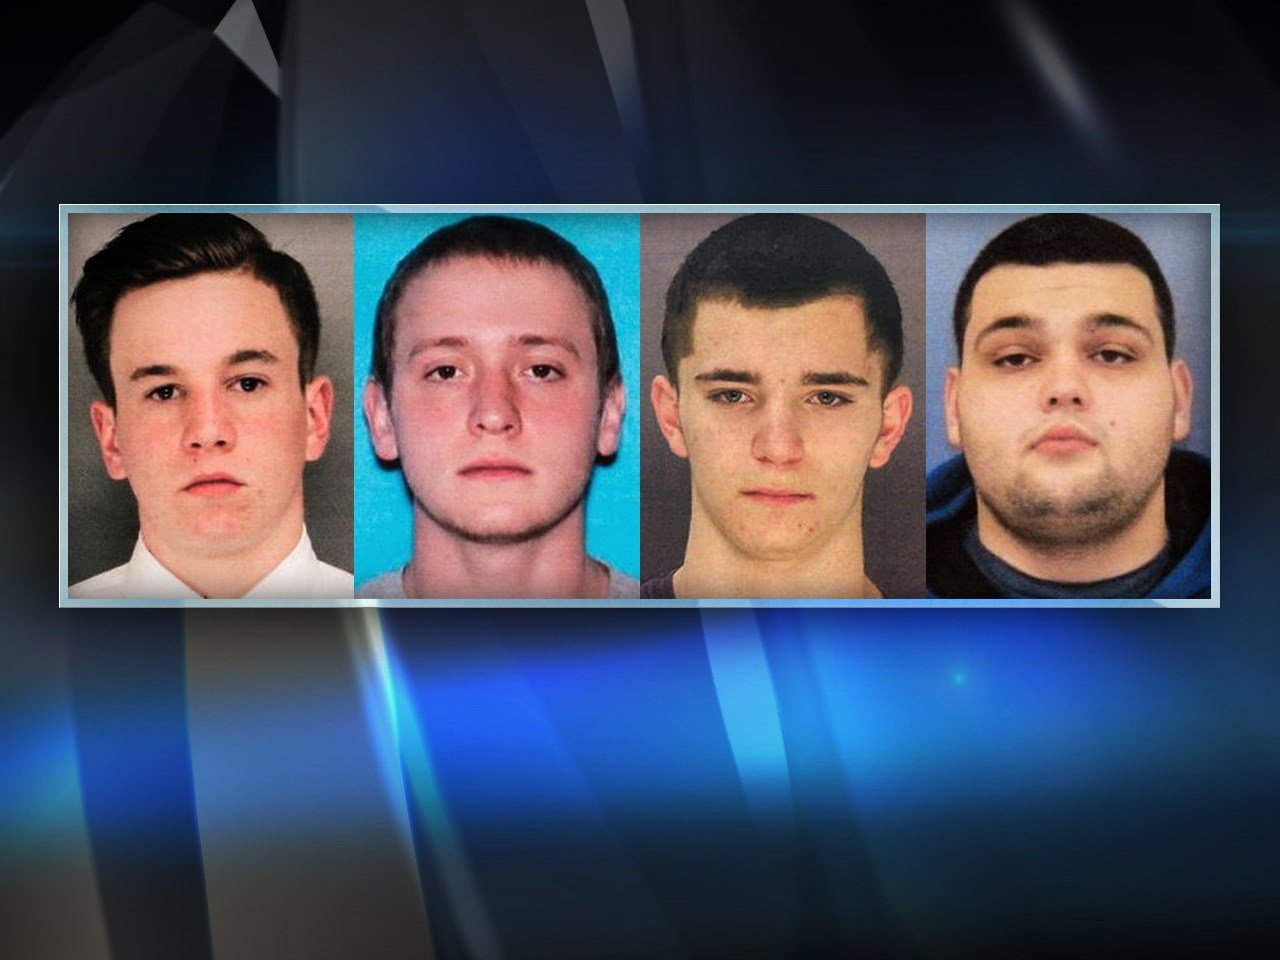 Foul play suspected in disappearances of 4 men in Pennsylvania